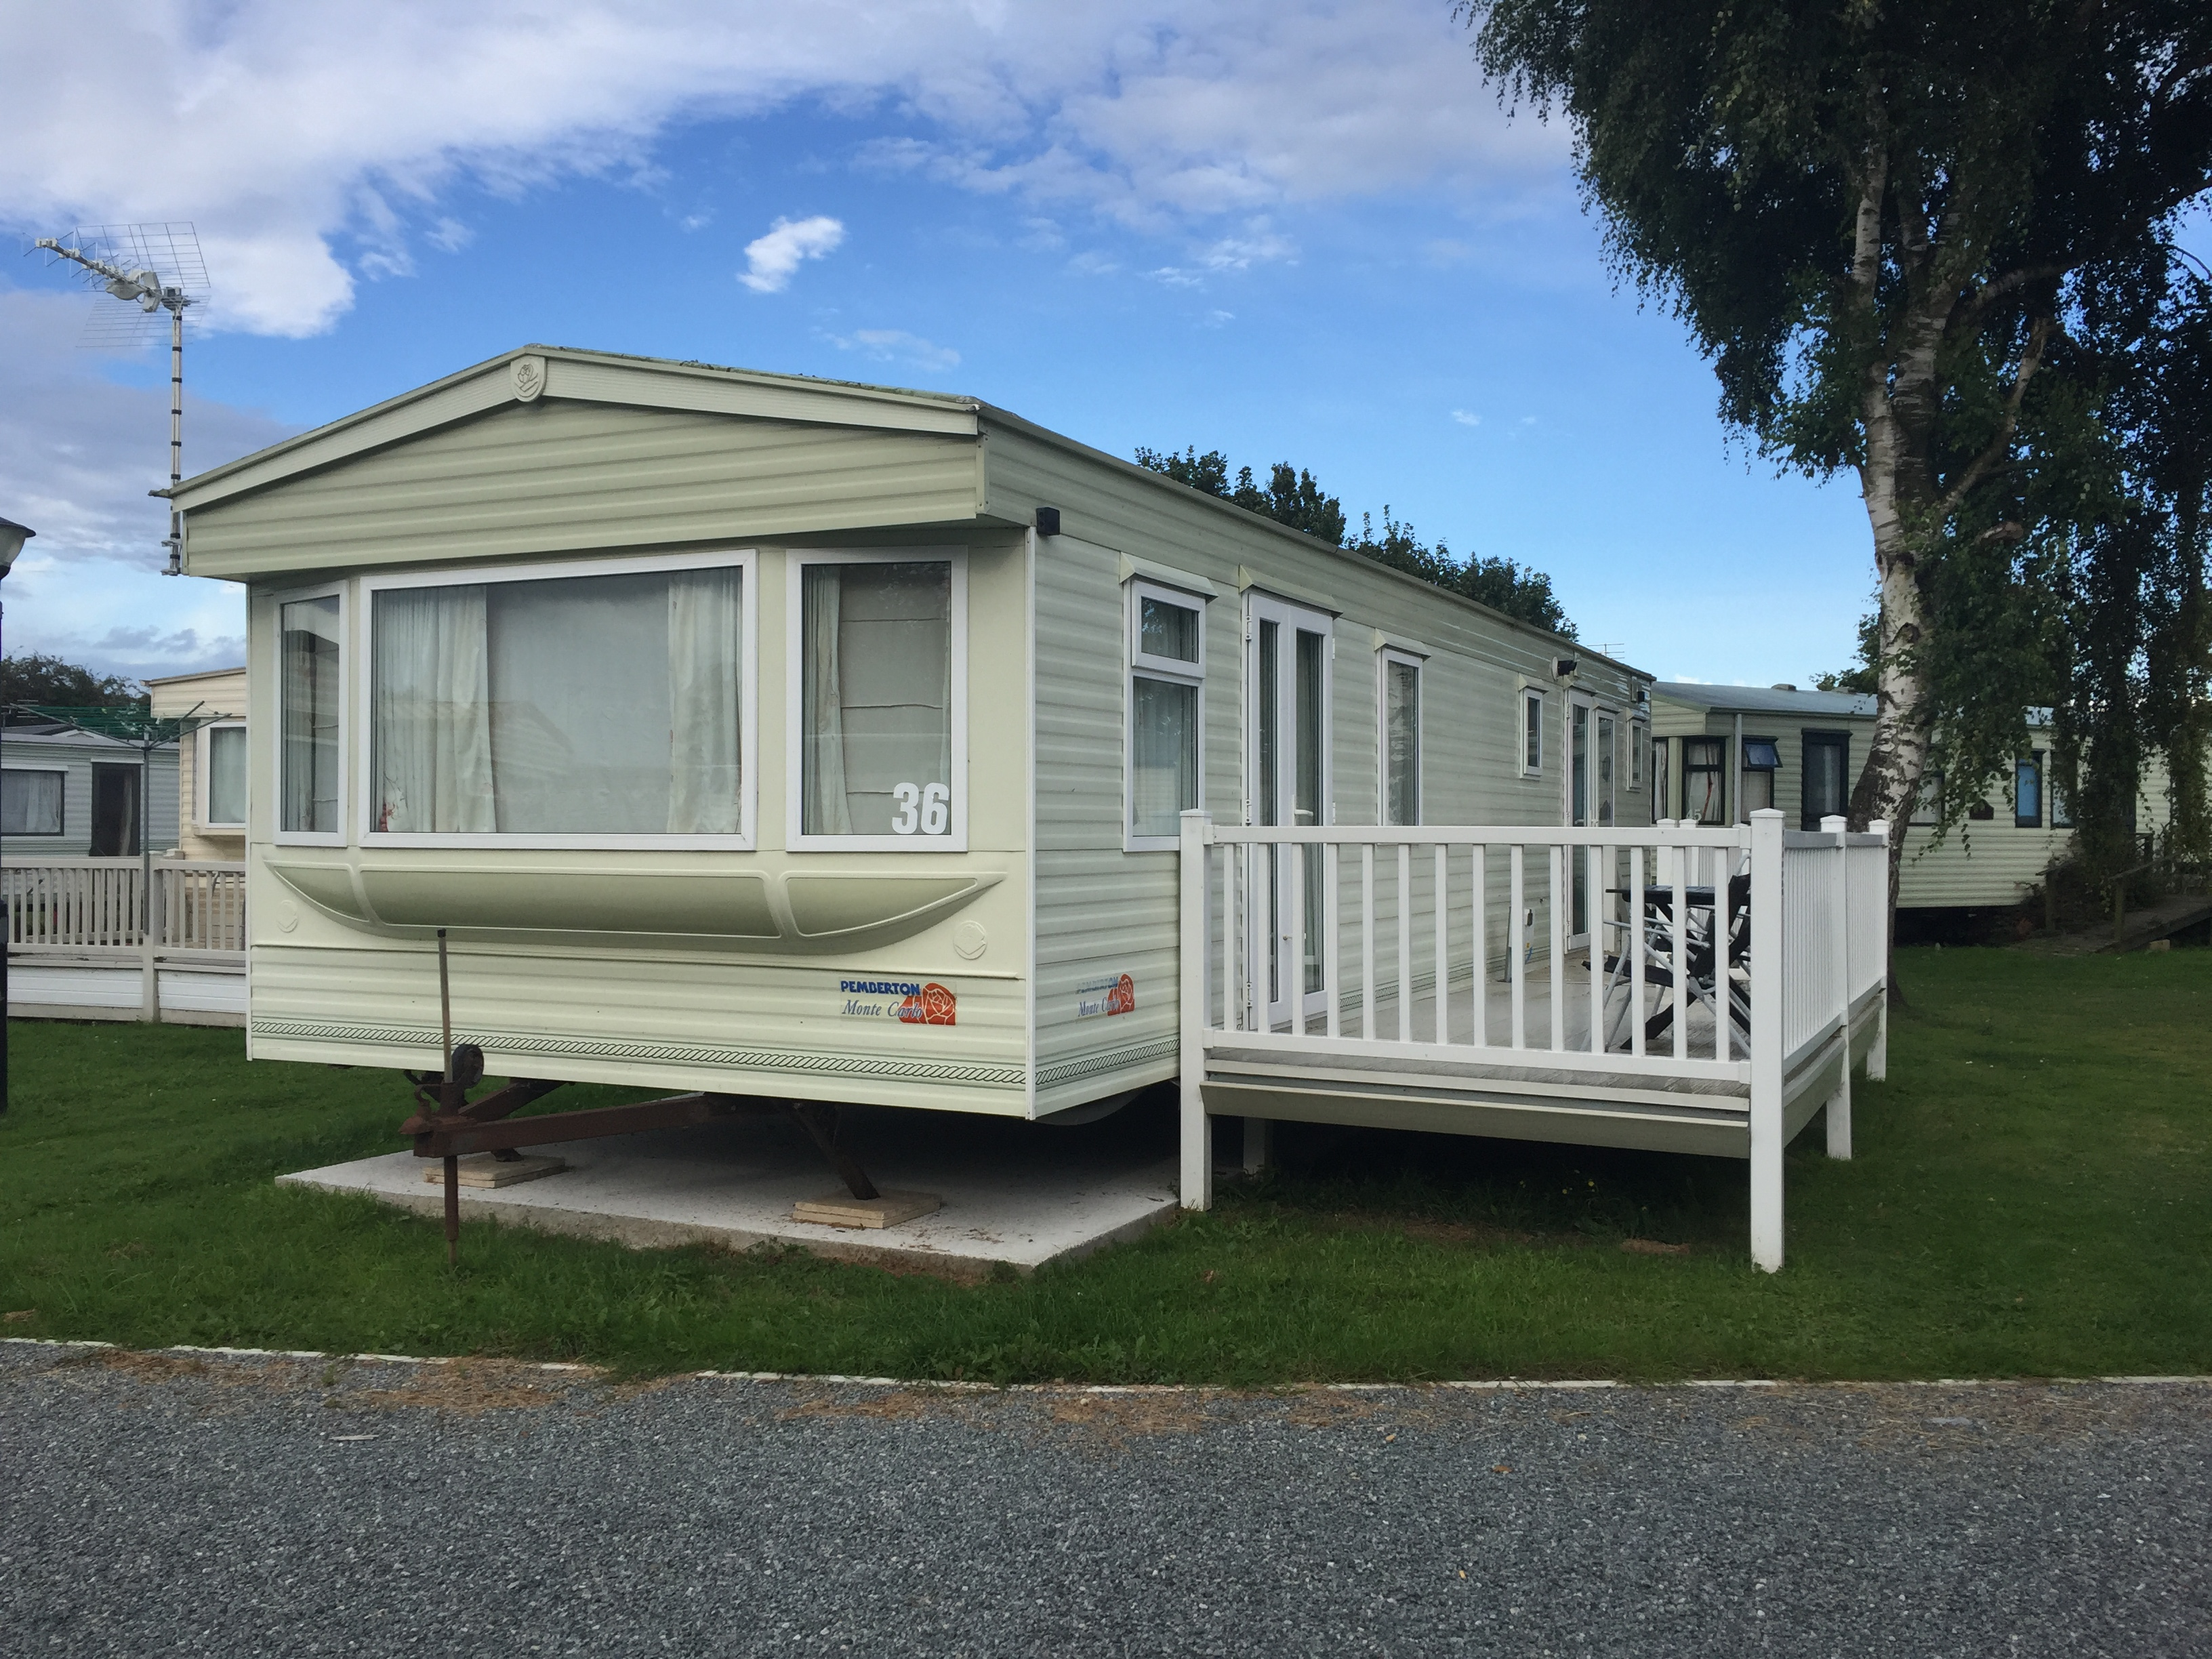 Caravan Holiday Homes | Burgh Hall Holiday Park